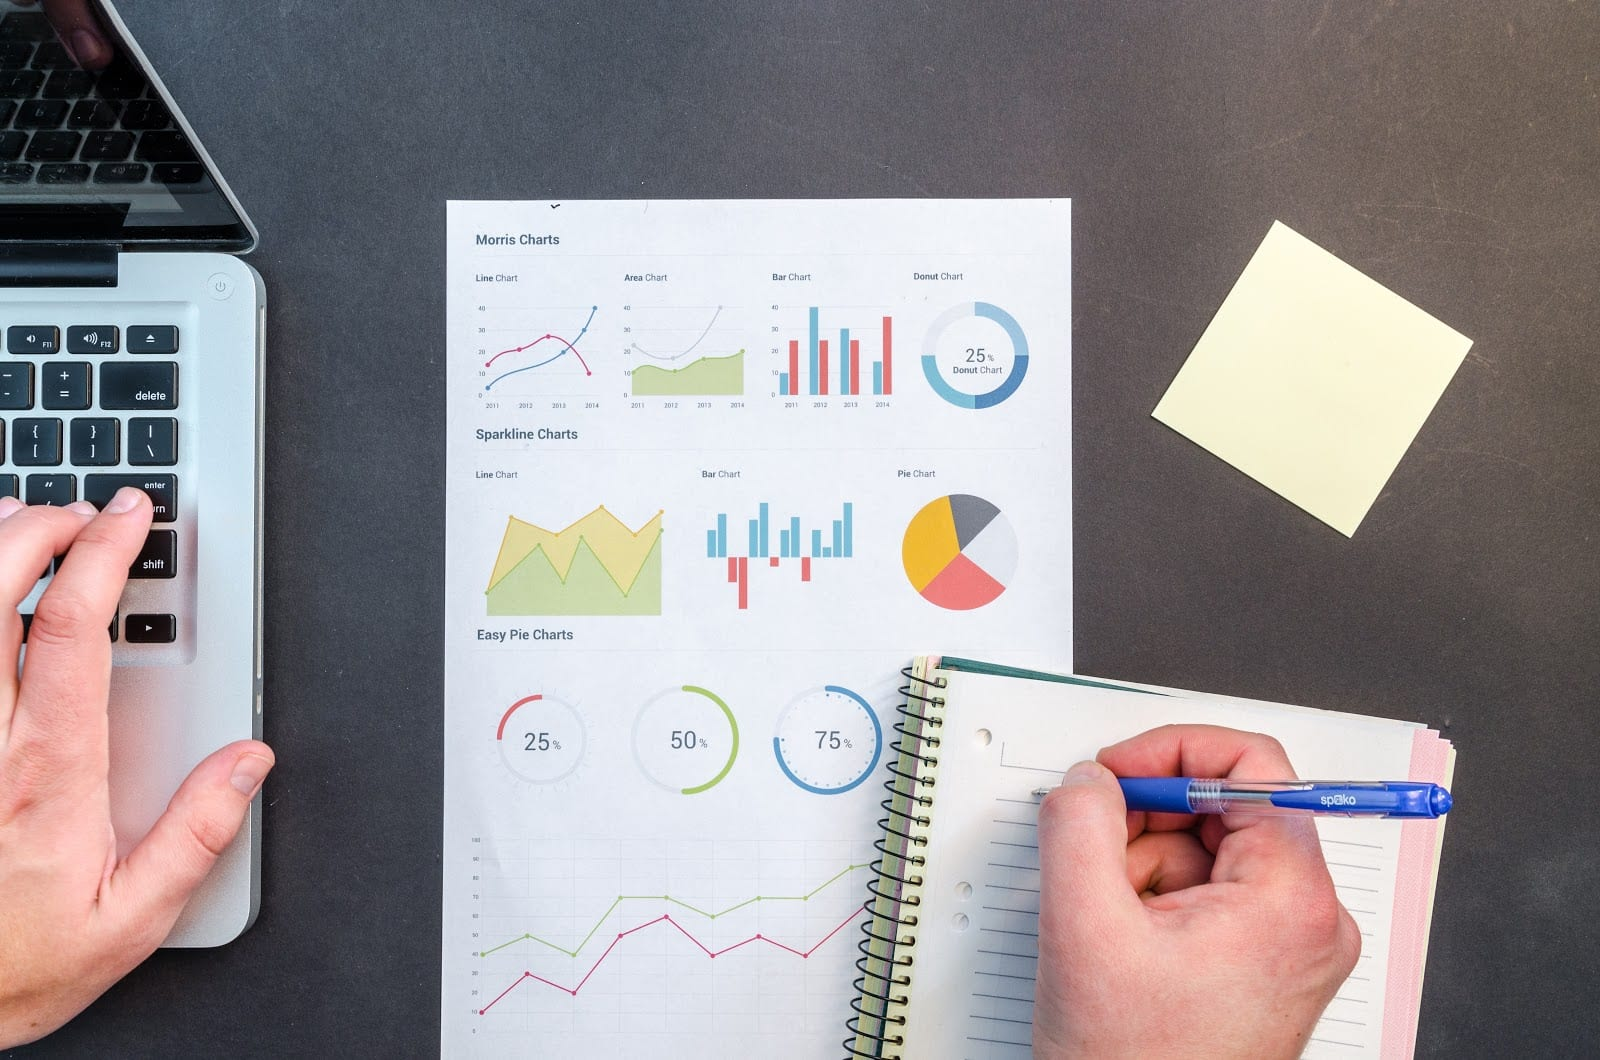 StrategyDriven Managing Your Business Article | Entrepreneurship | Business Growth | How To Minimize Your Business To Maximize Growth